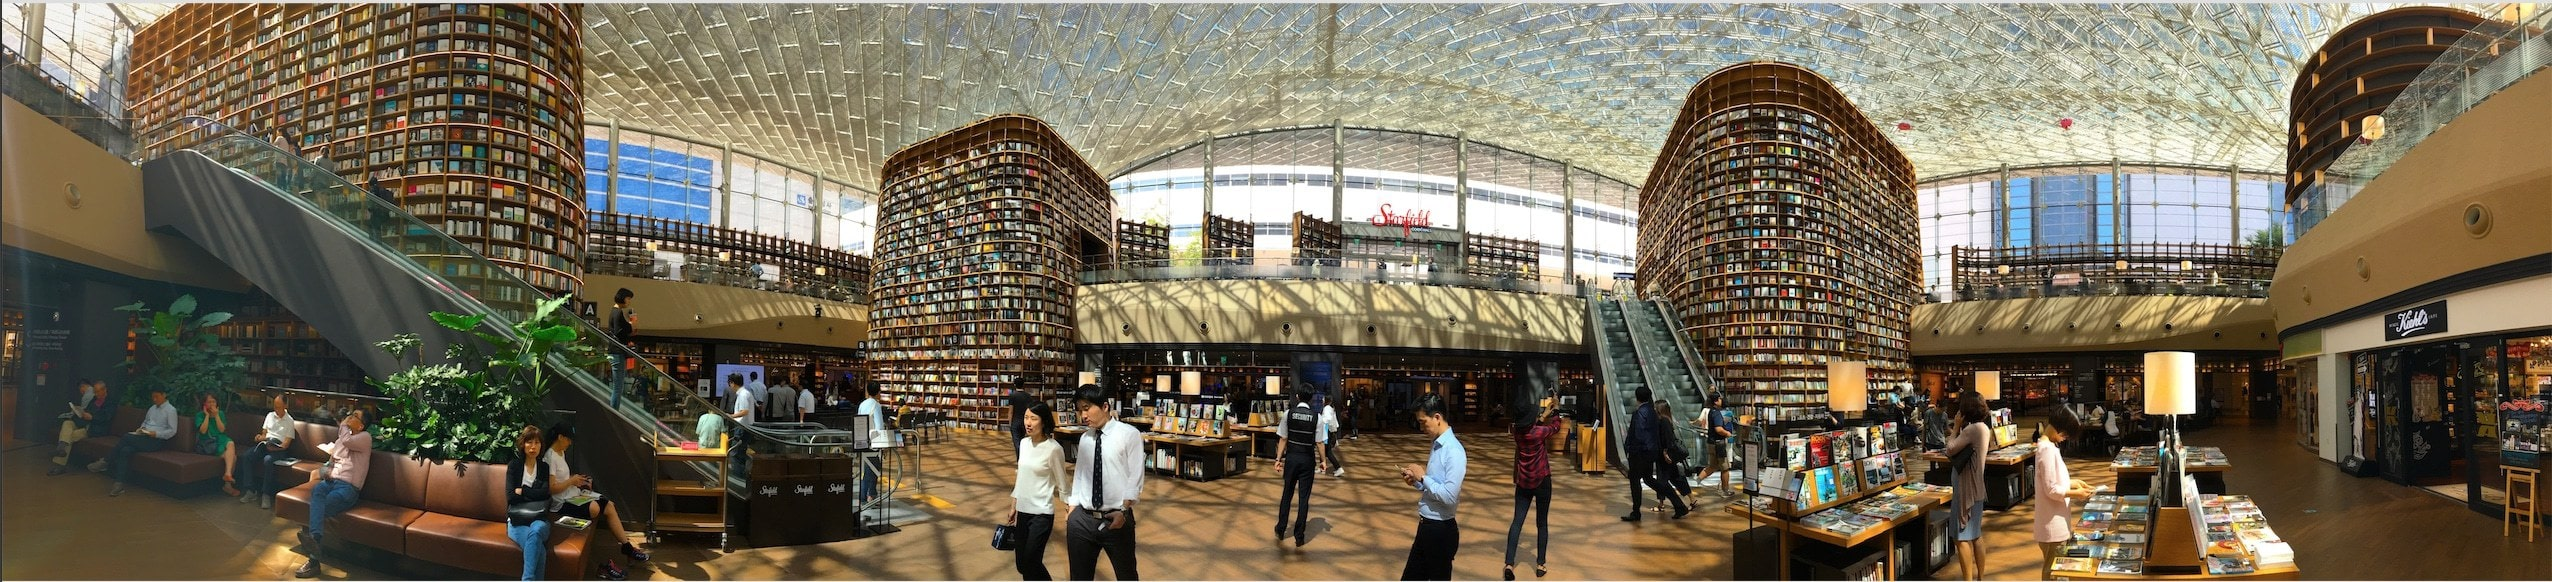 Starfield COEX Library in the middle of the mall